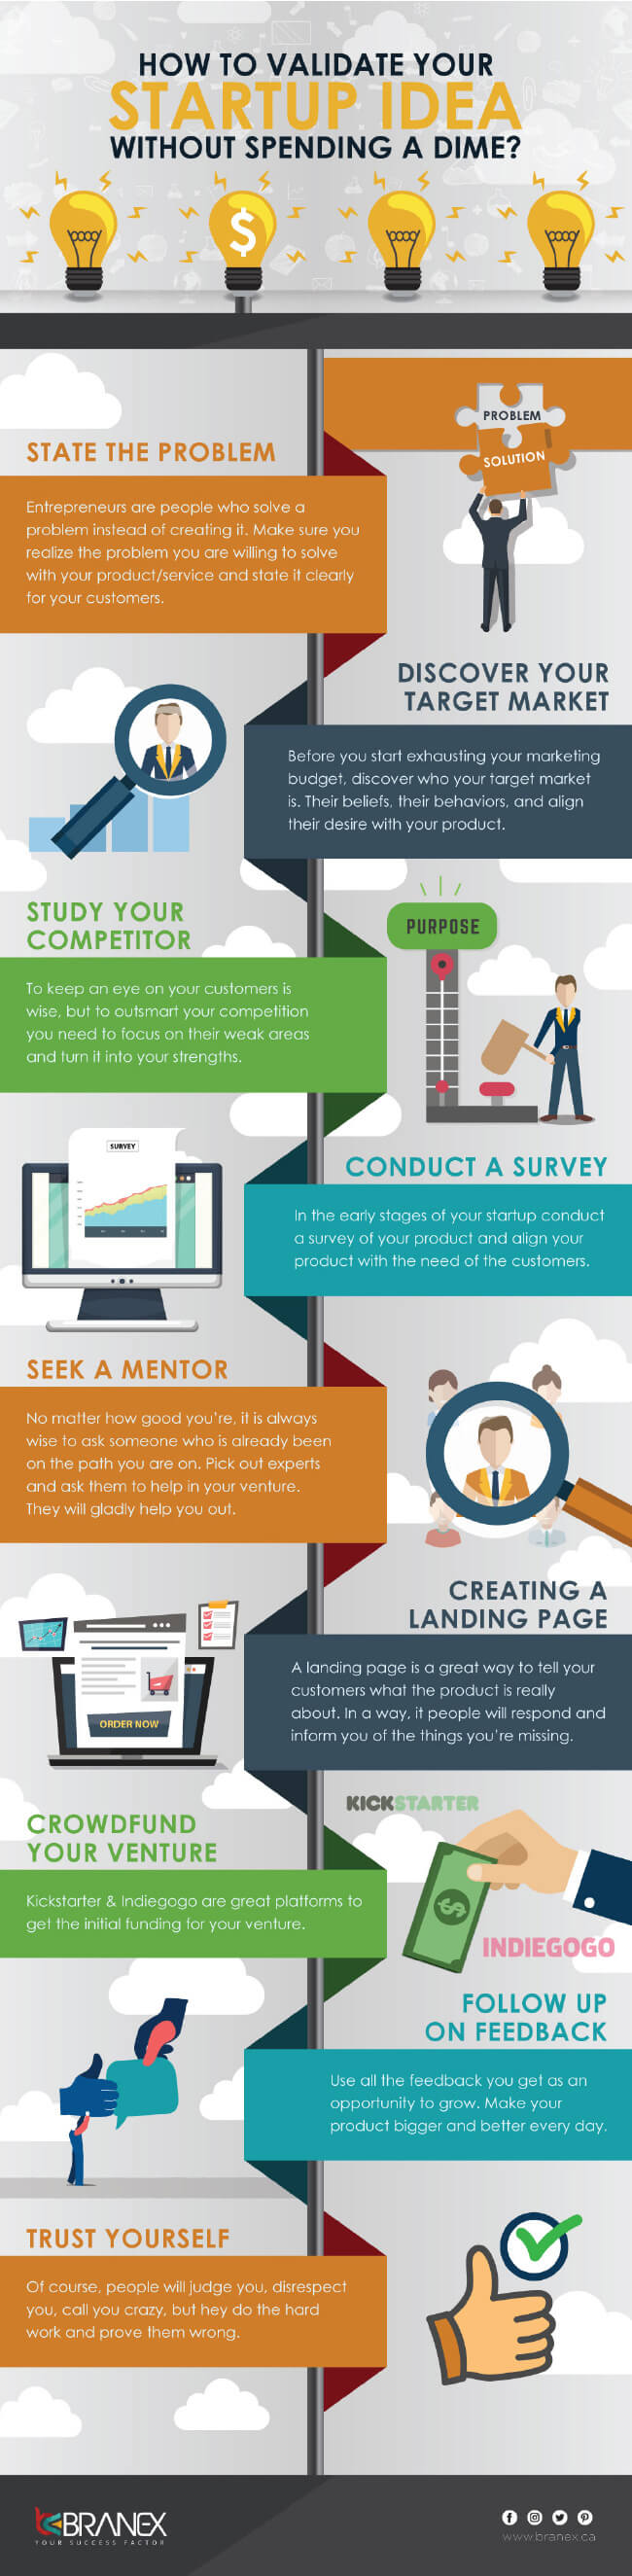 Image titled how to validate your startup idea without spending a dime